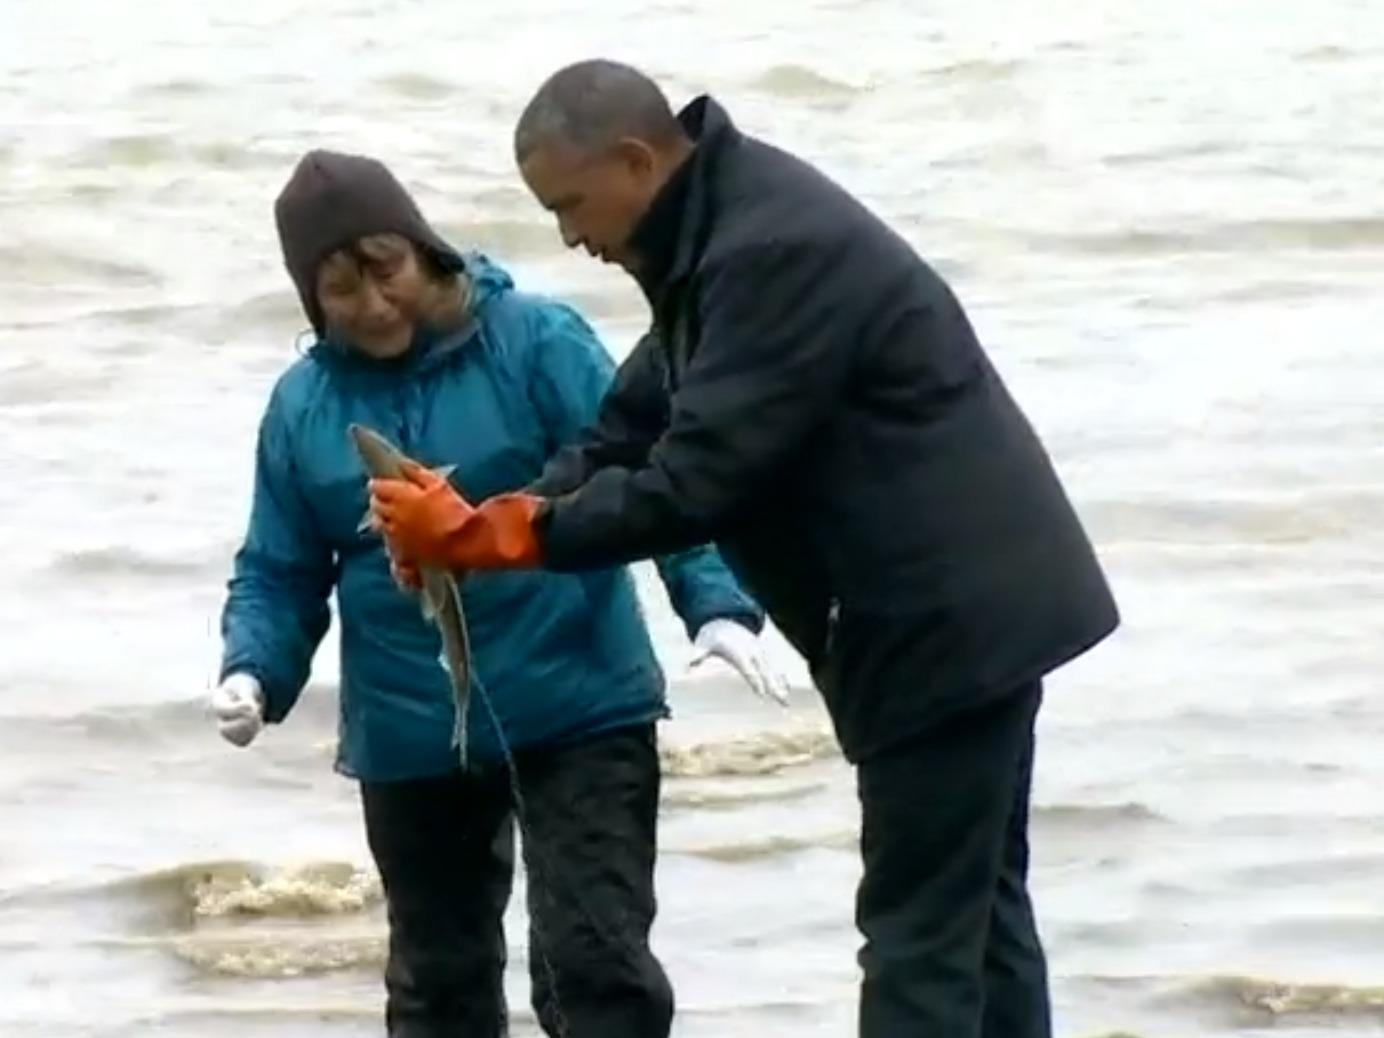 A salmon spawned on Obama's shoes during his trip to Alaska